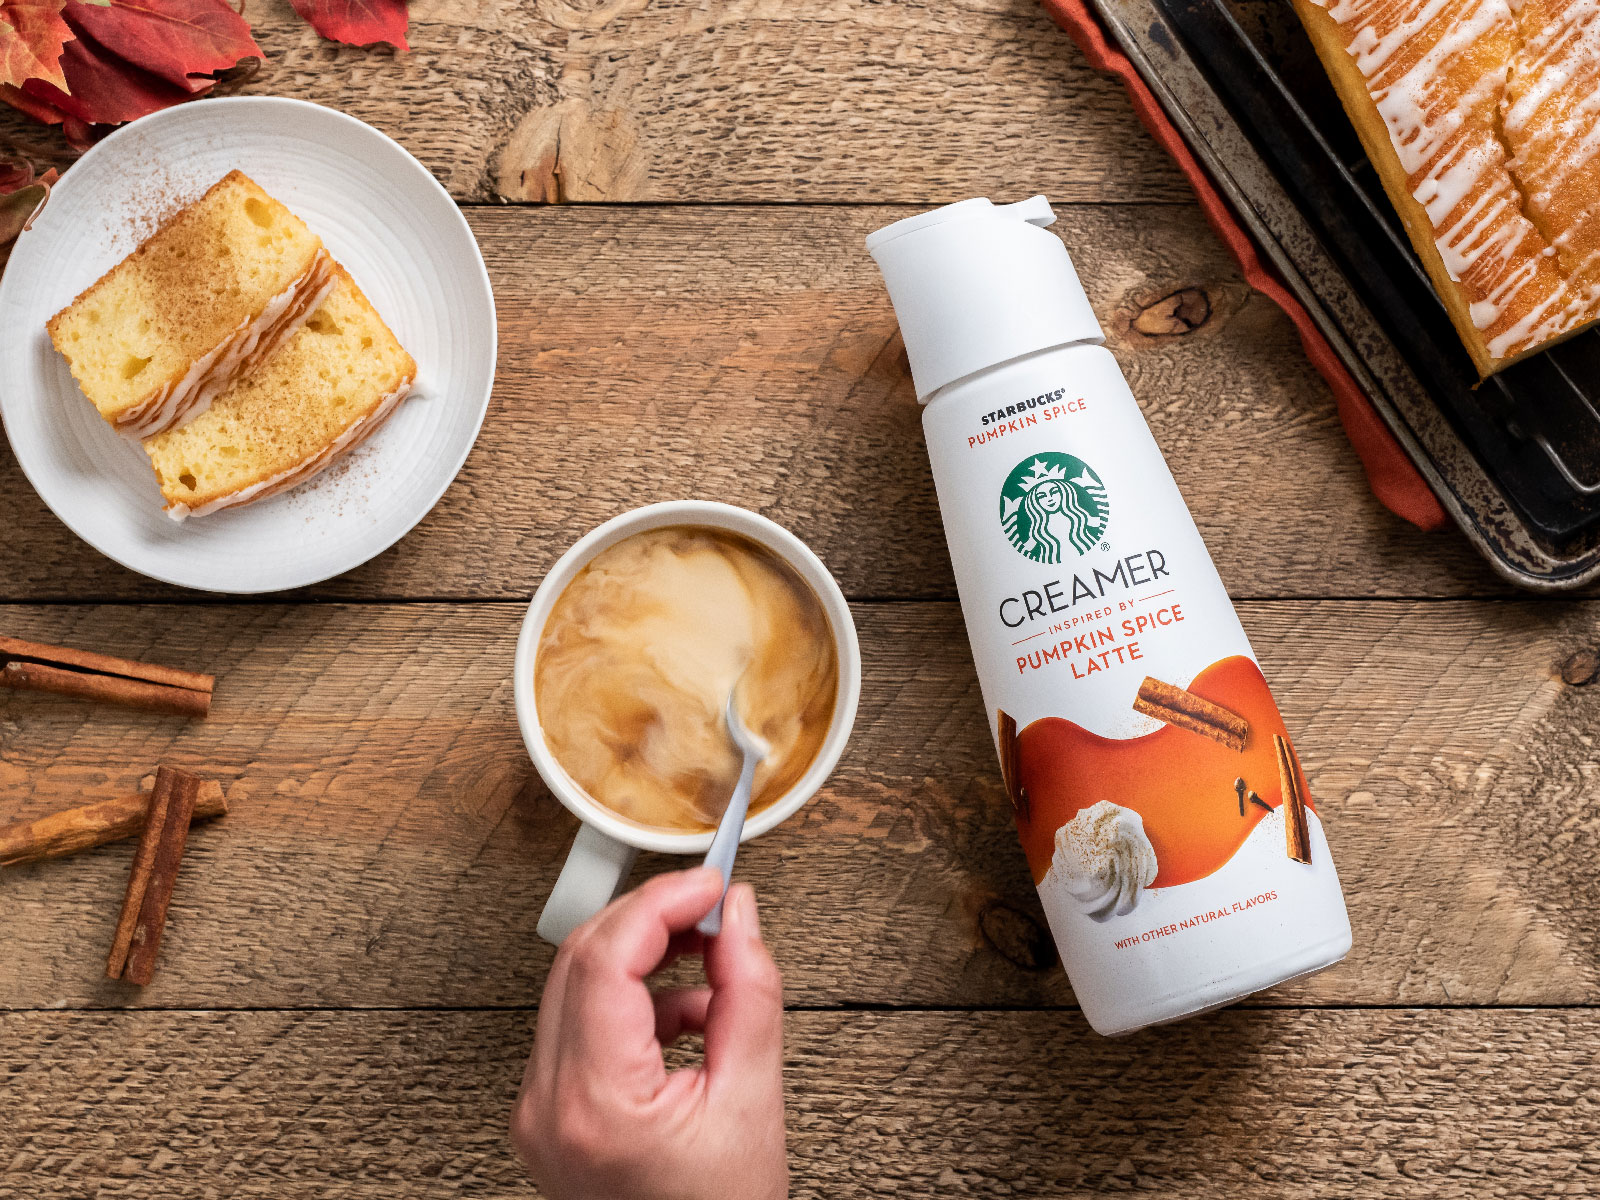 Starbucks-Pumpkin-Spice-Creamer-FT-BLOG0819.jpg